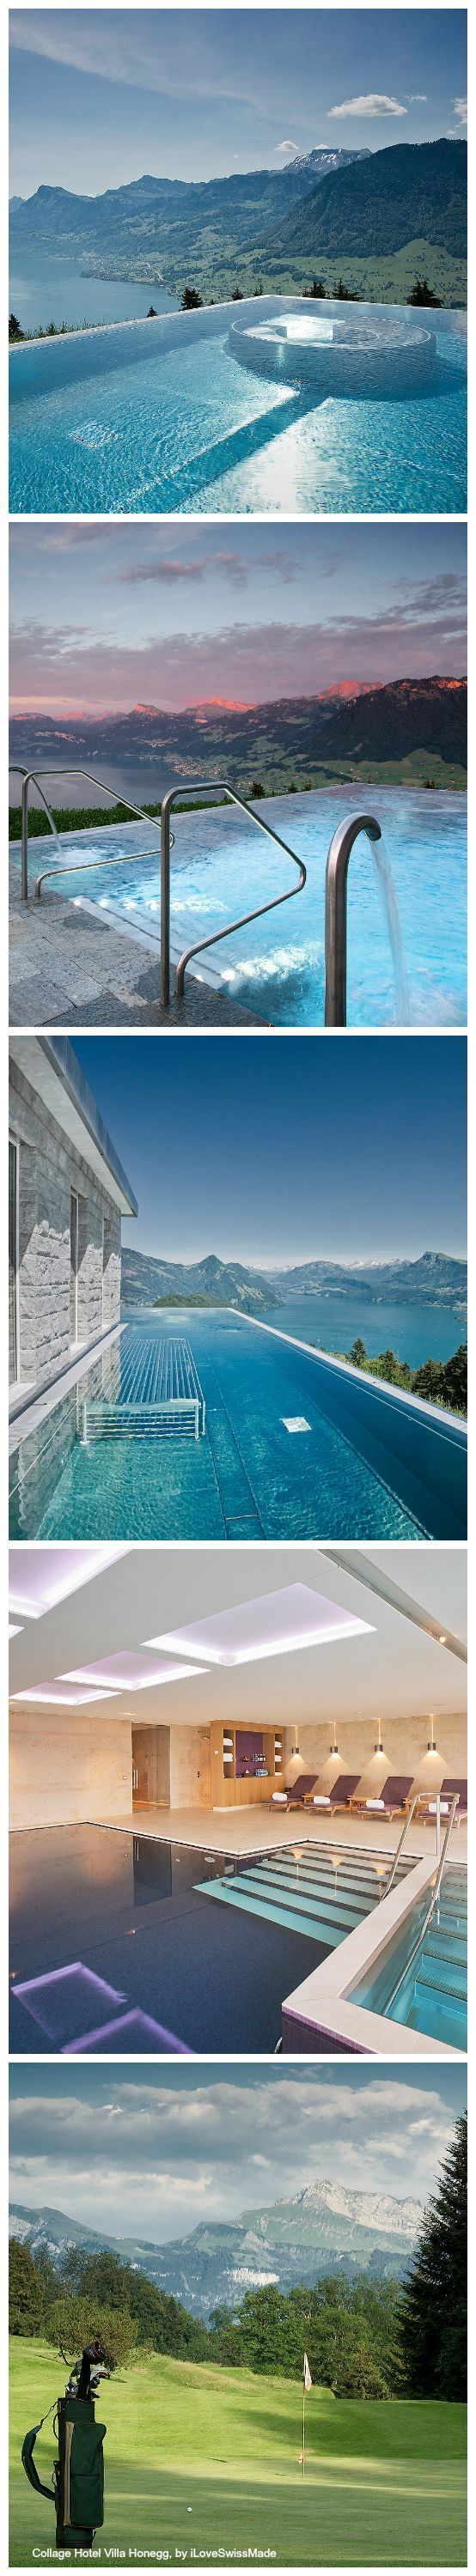 Hotel Villa Honegg in Switzerland hotel fancy elegant swimming pools    and 5 amazing hotels you must visit before you dies, vacation bucket list February 2015